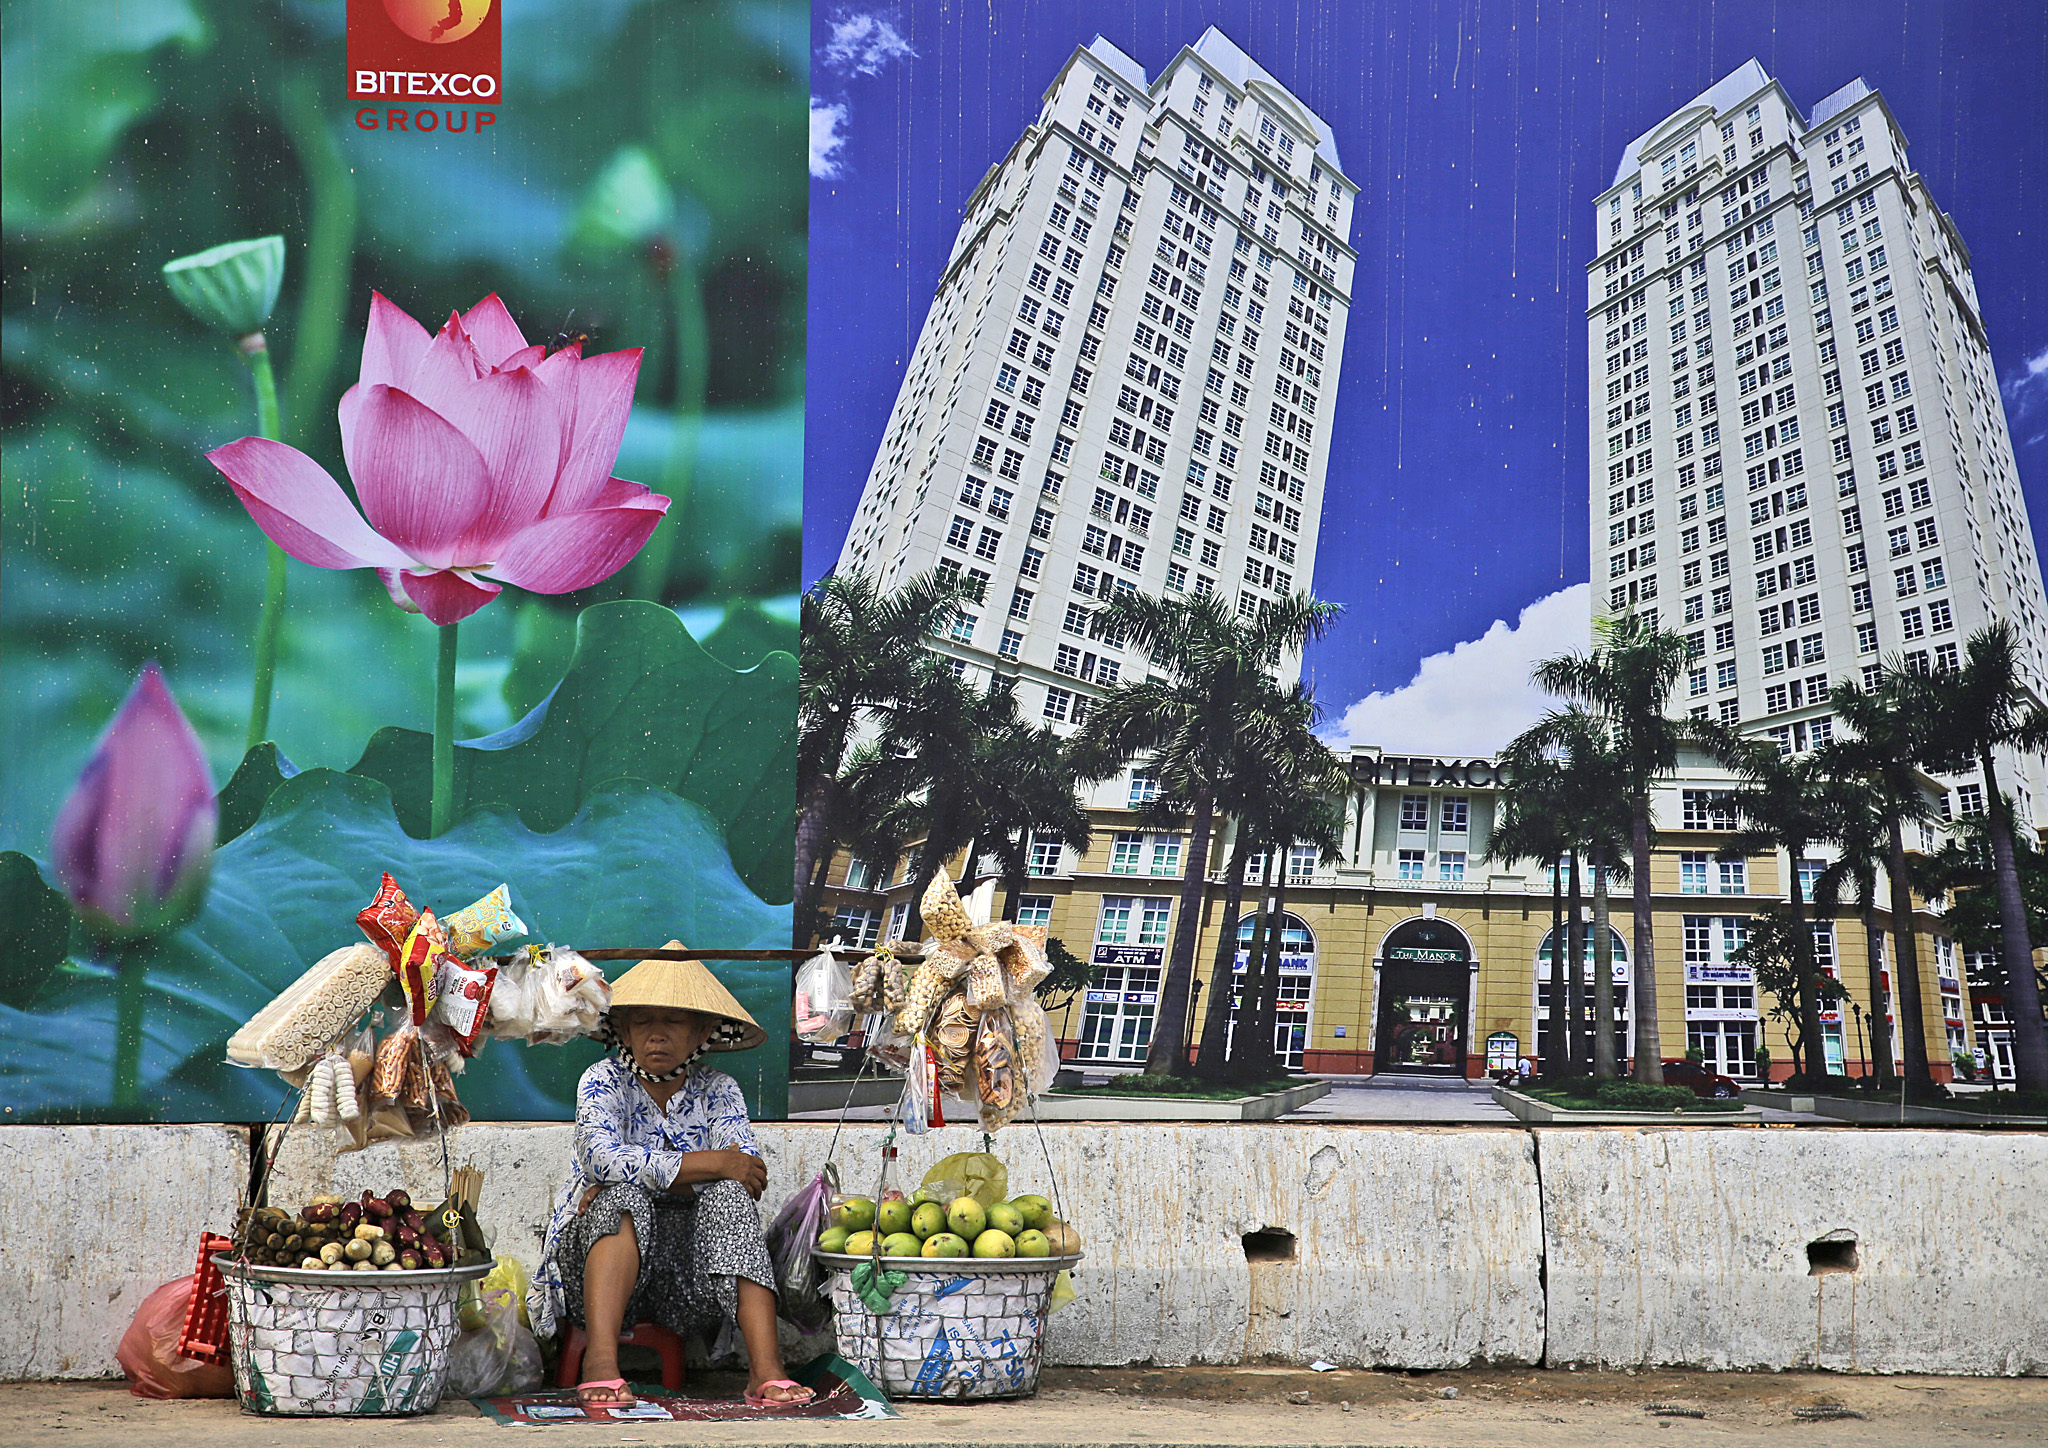 A snack and fruit vendor waits for customers near the advertisement board of a shopping mall and apartment building in Ho Chi Minh City, Vietnam, Wednesday, April 29, 2015. The country is set to celebrate the 40th anniversary of the end of the Vietnam War on April 30.(AP Photo/Dita Alangkara)